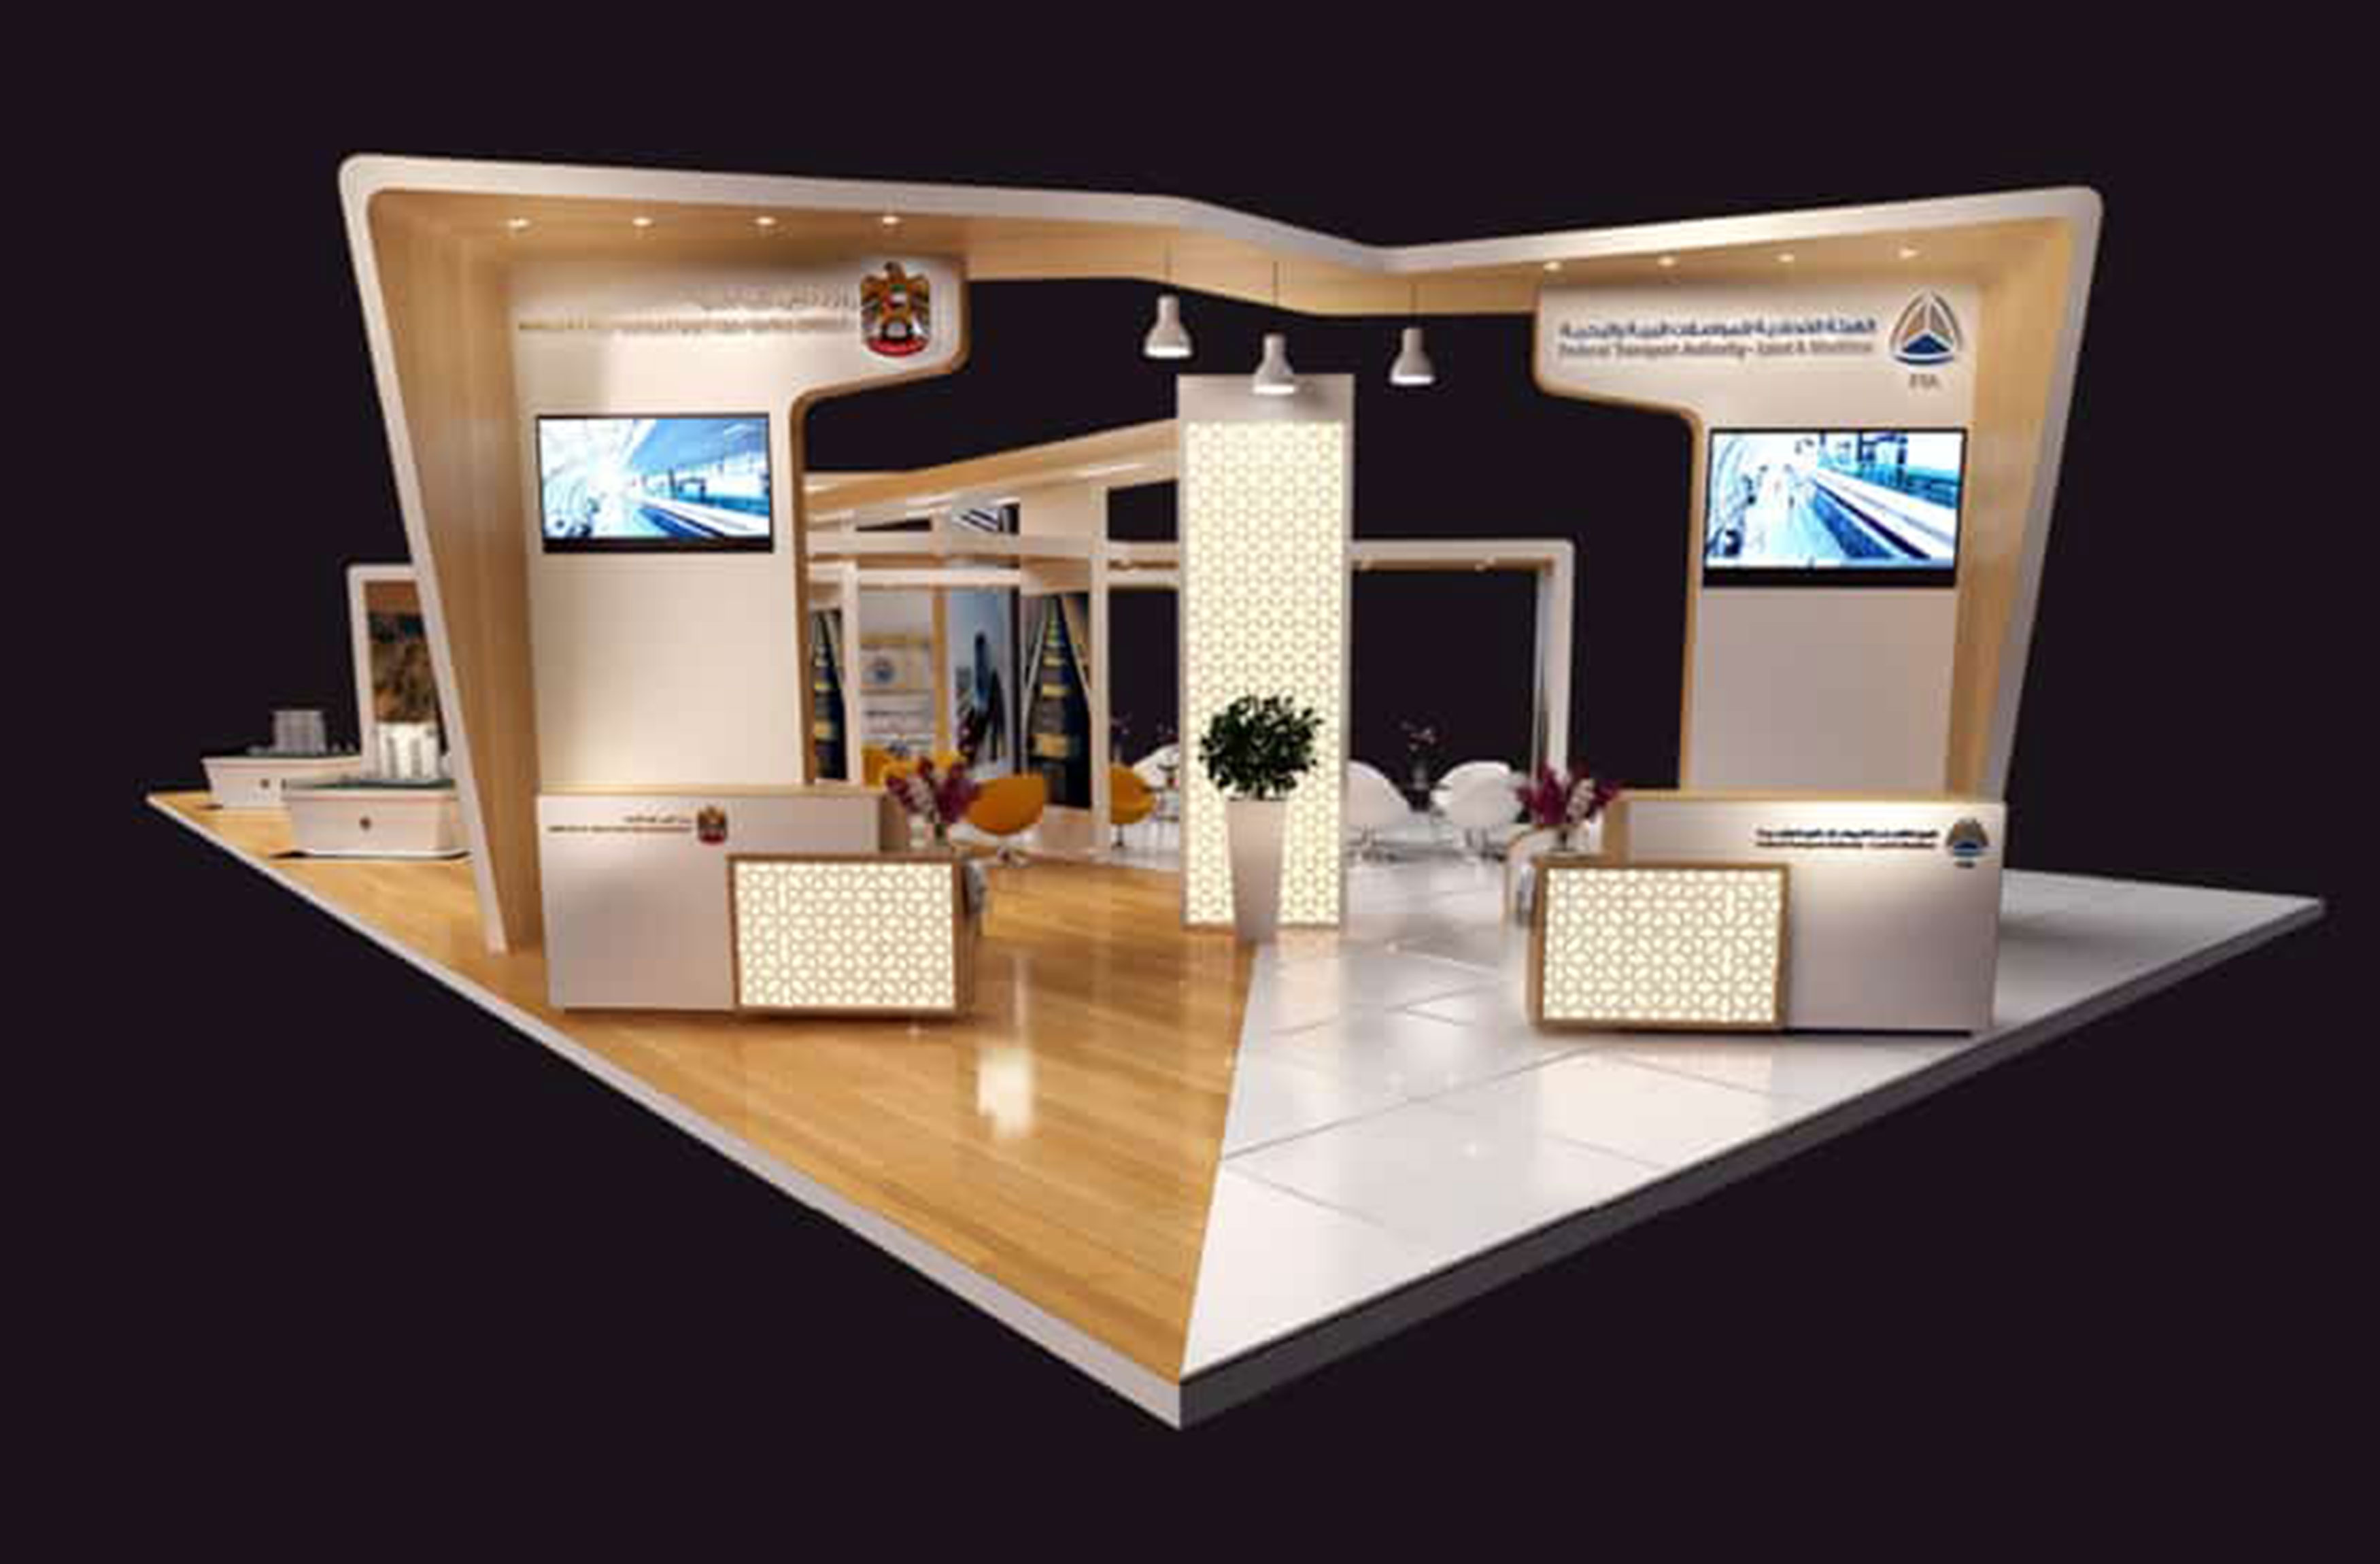 Exhibition Stand Transport : Federal transport authority exhibition stand excelpixels